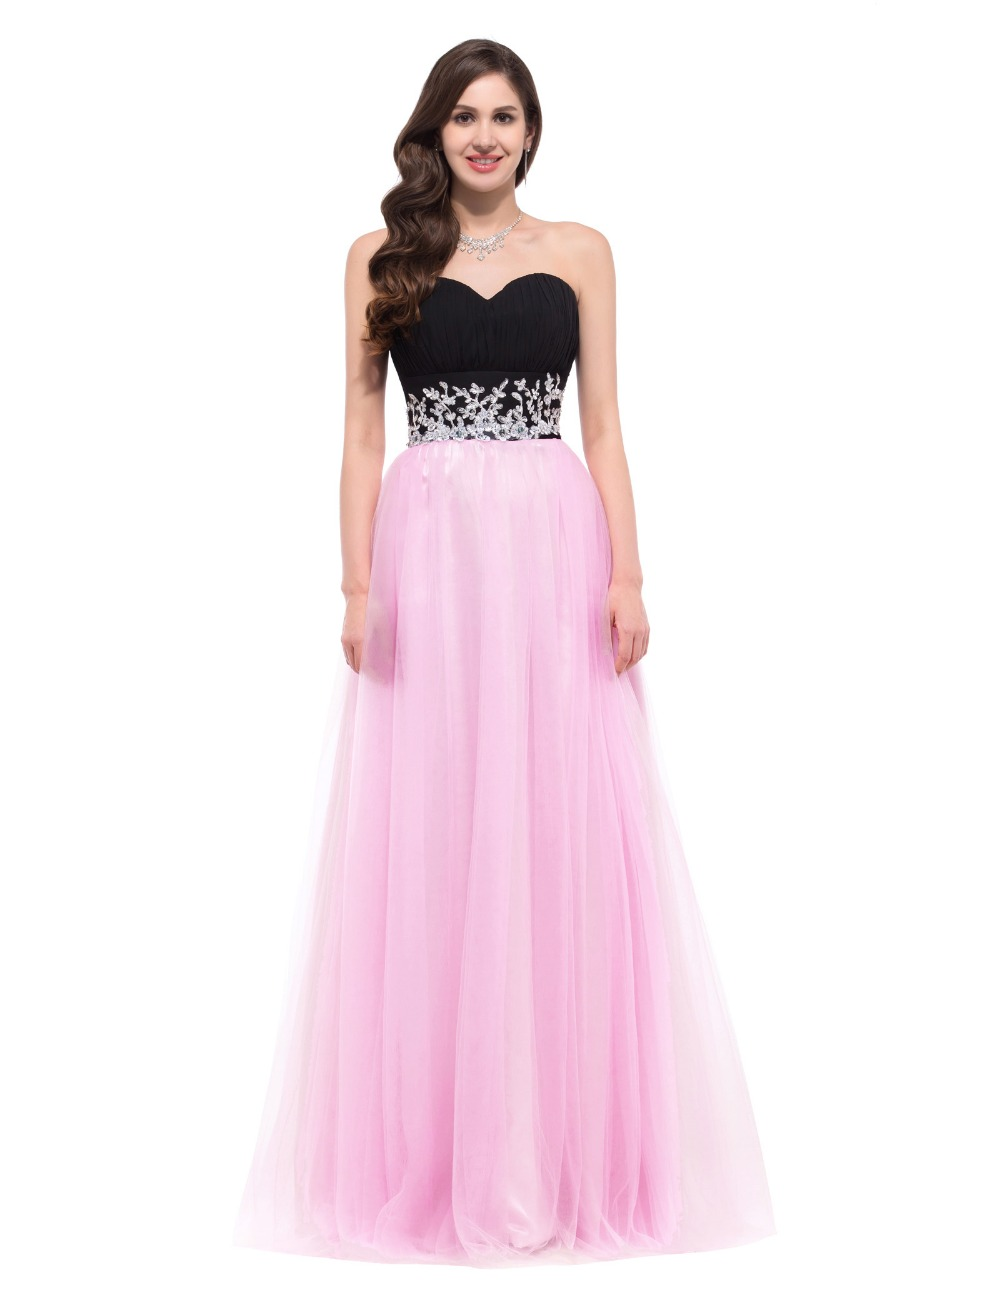 Buy the latest women's Pink dresses online at low price. StyleWe offers cheap dresses in red, black, white and more for different occasions.